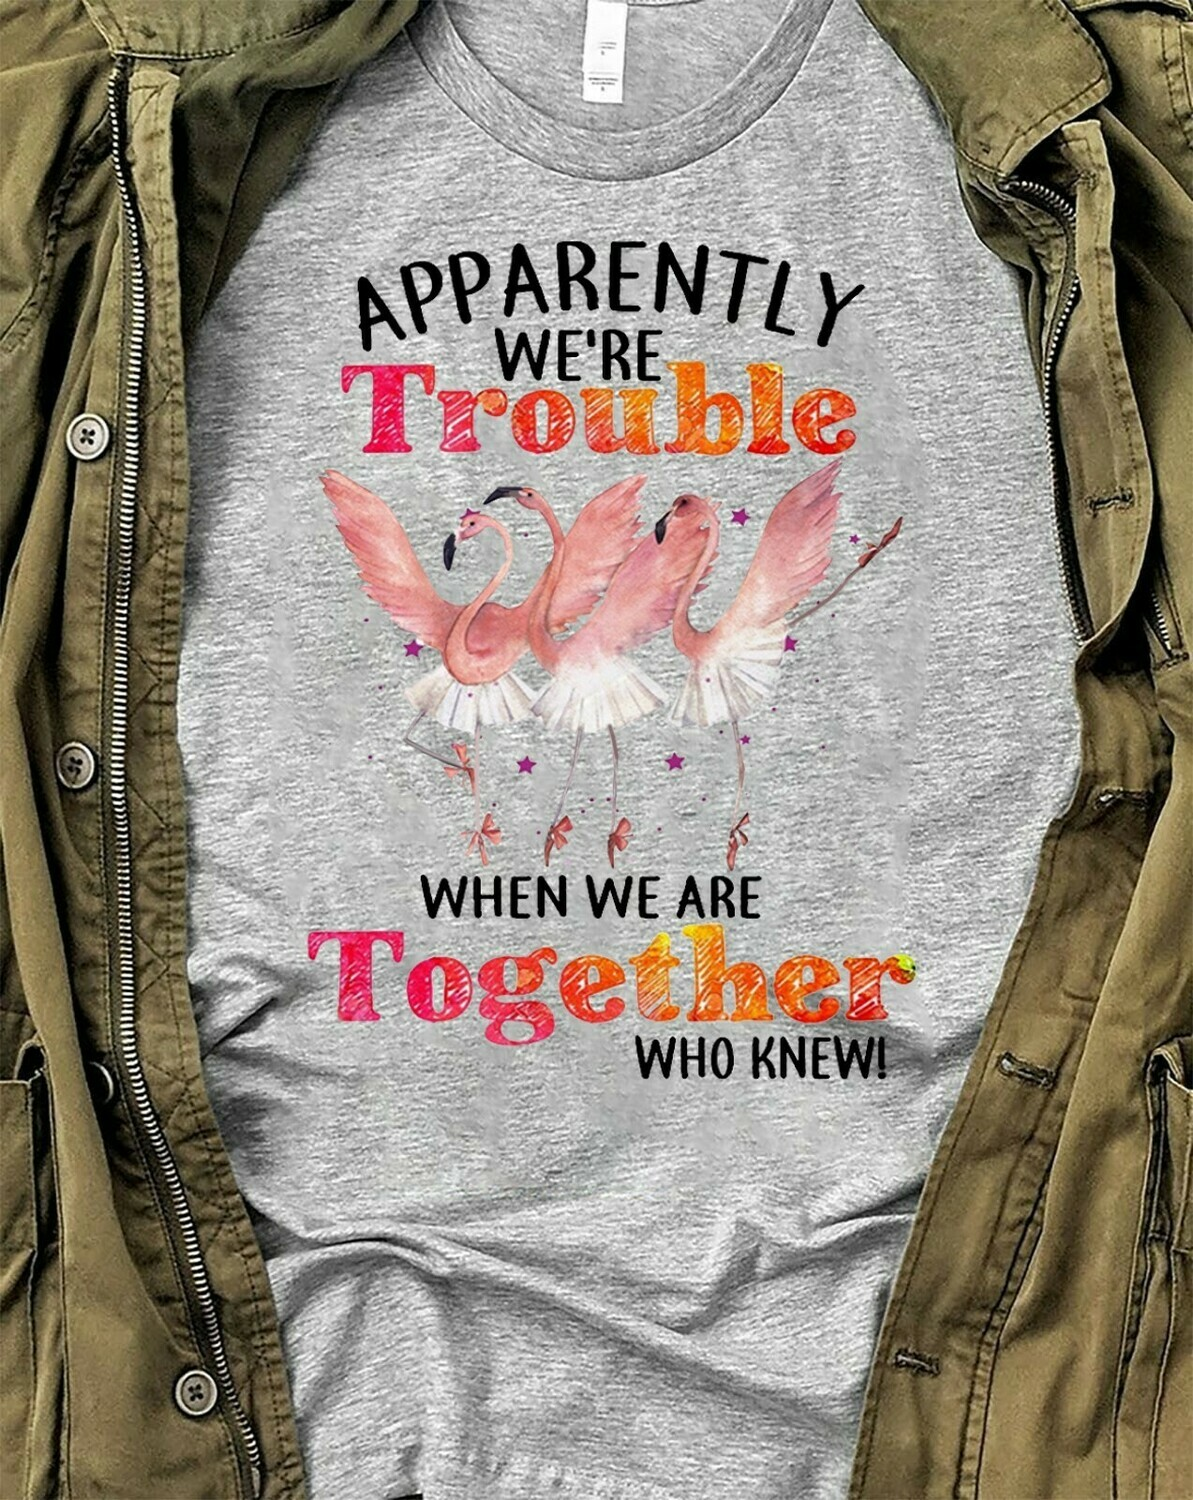 Apperenlly we are Trouble when we are Together who knew, Flamingo team party, Flamingo gang funny birthday gift T-shirt Long Sleeve Sweatshirt Hoodie Jolly Family Gifts